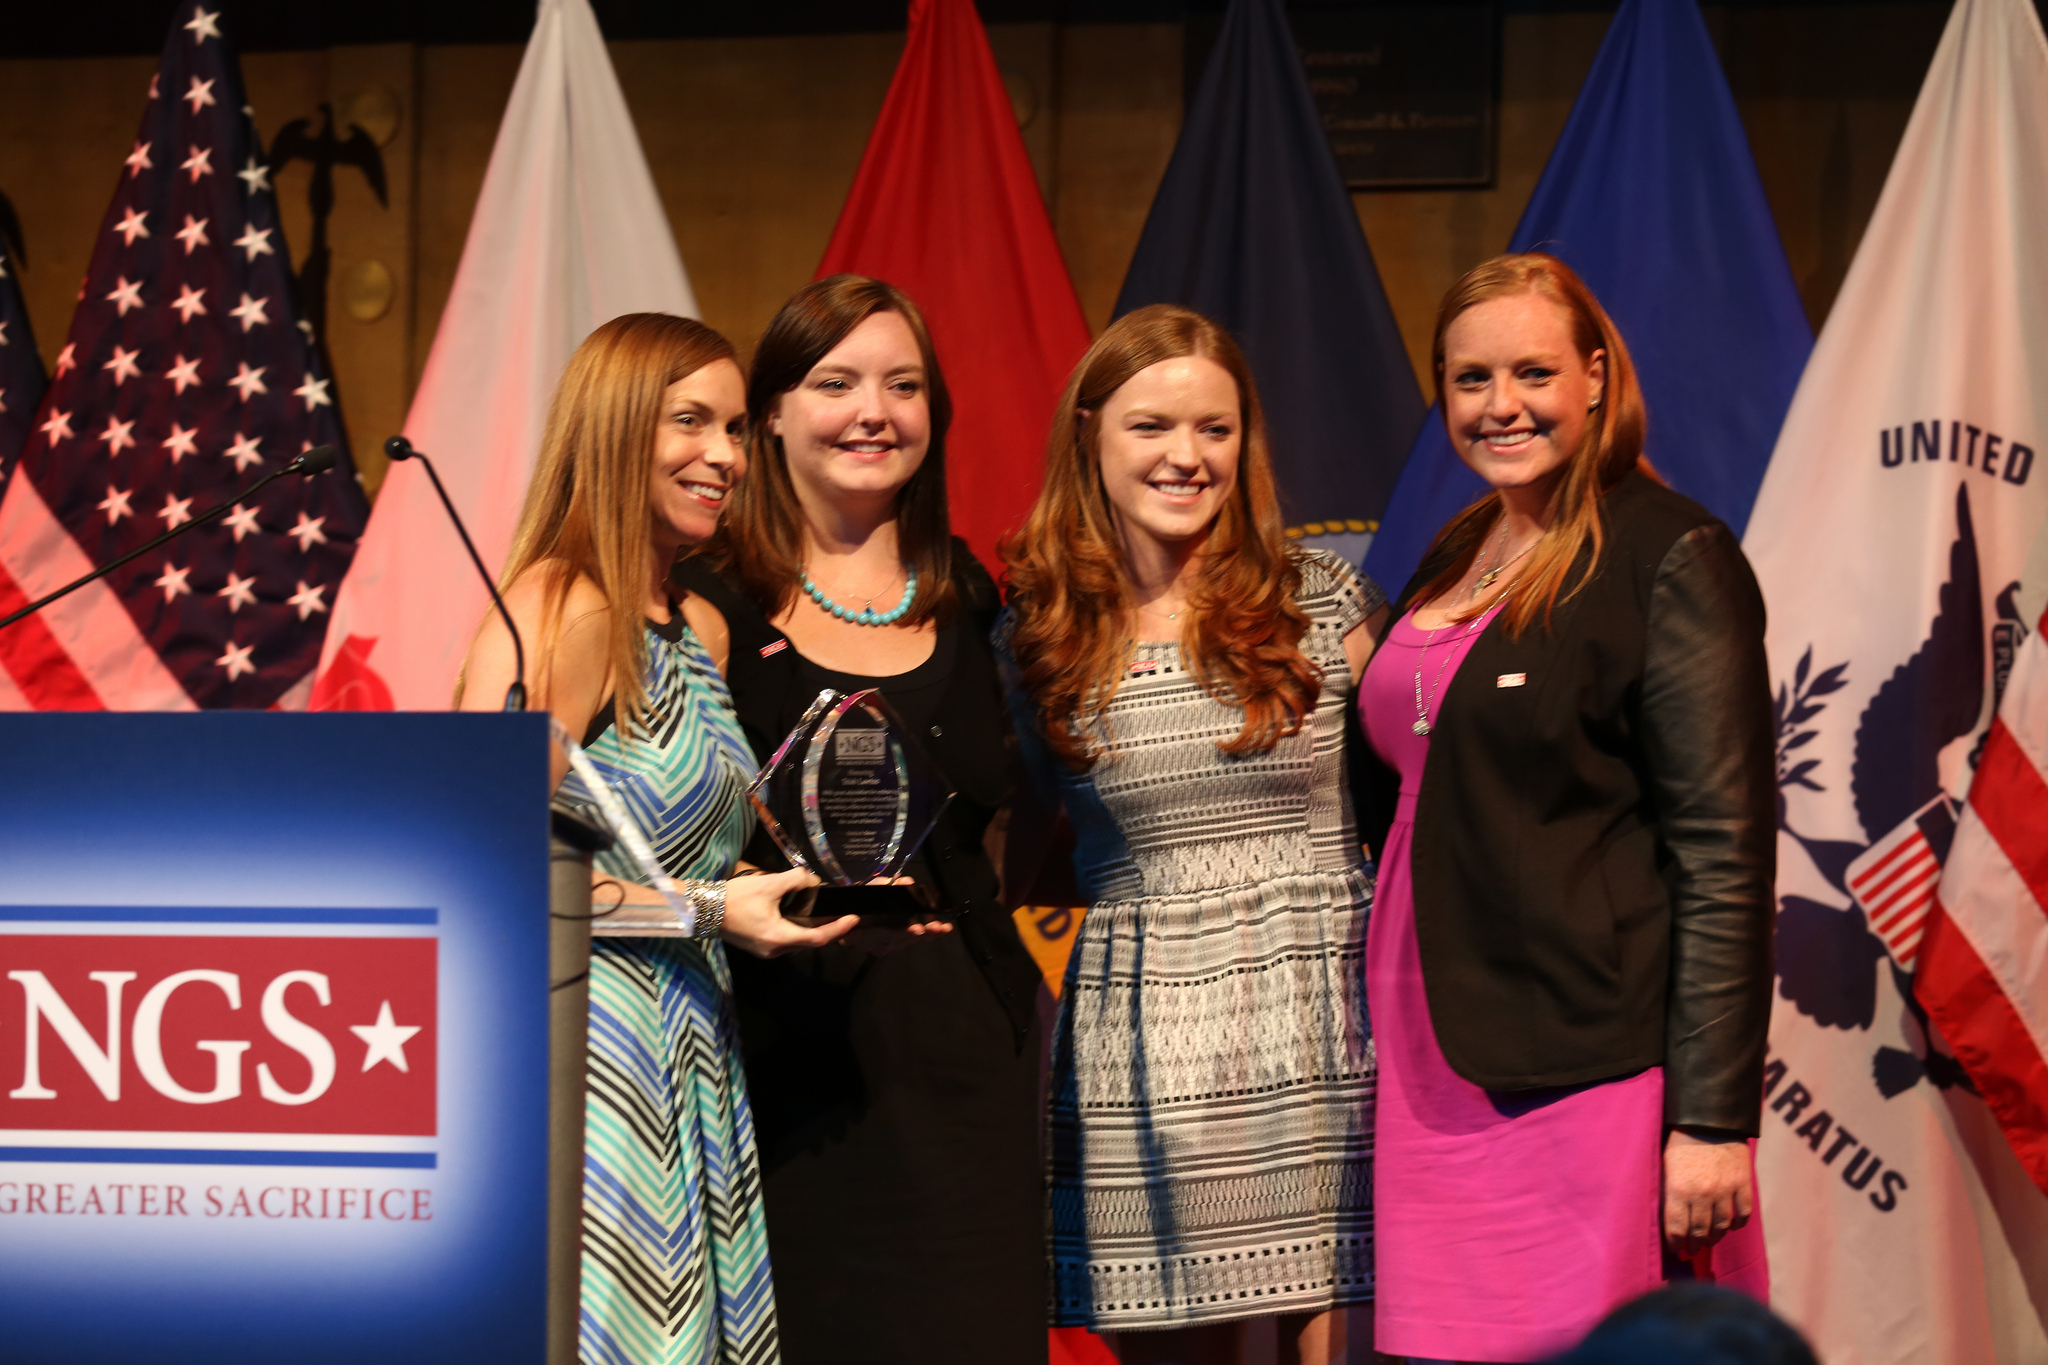 My sisters and I presenting the 2013 Patricia A. Brown Liberty Award